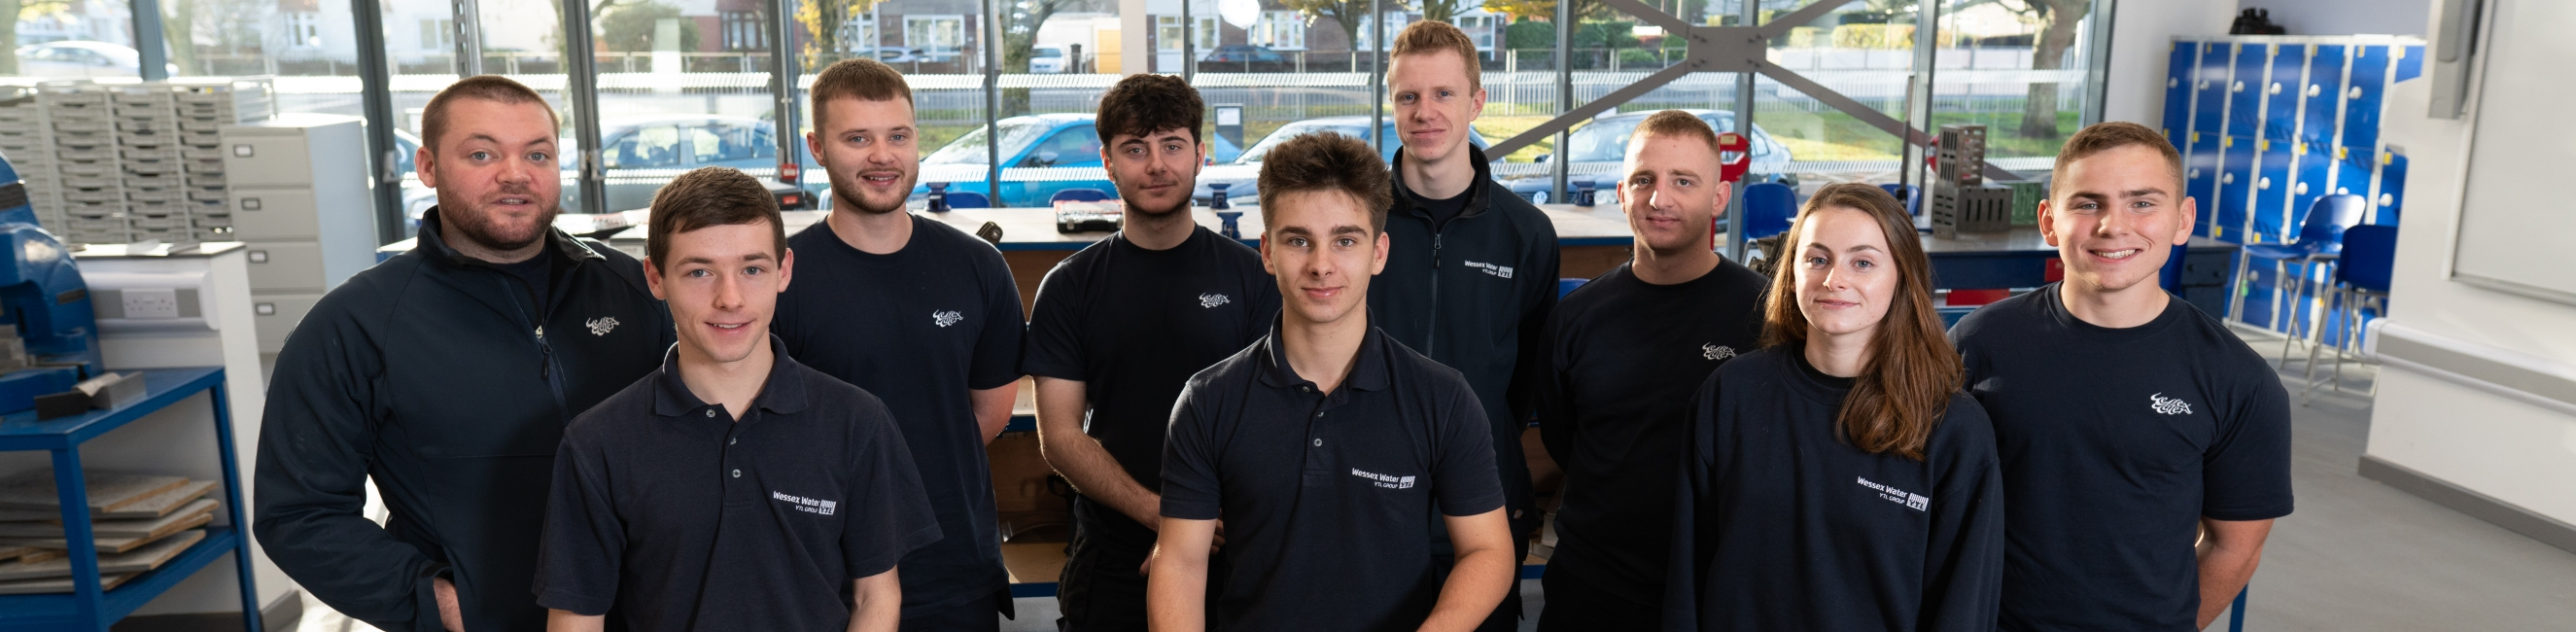 Weston College Students, Work Apprenticeships, Higher and Further Education